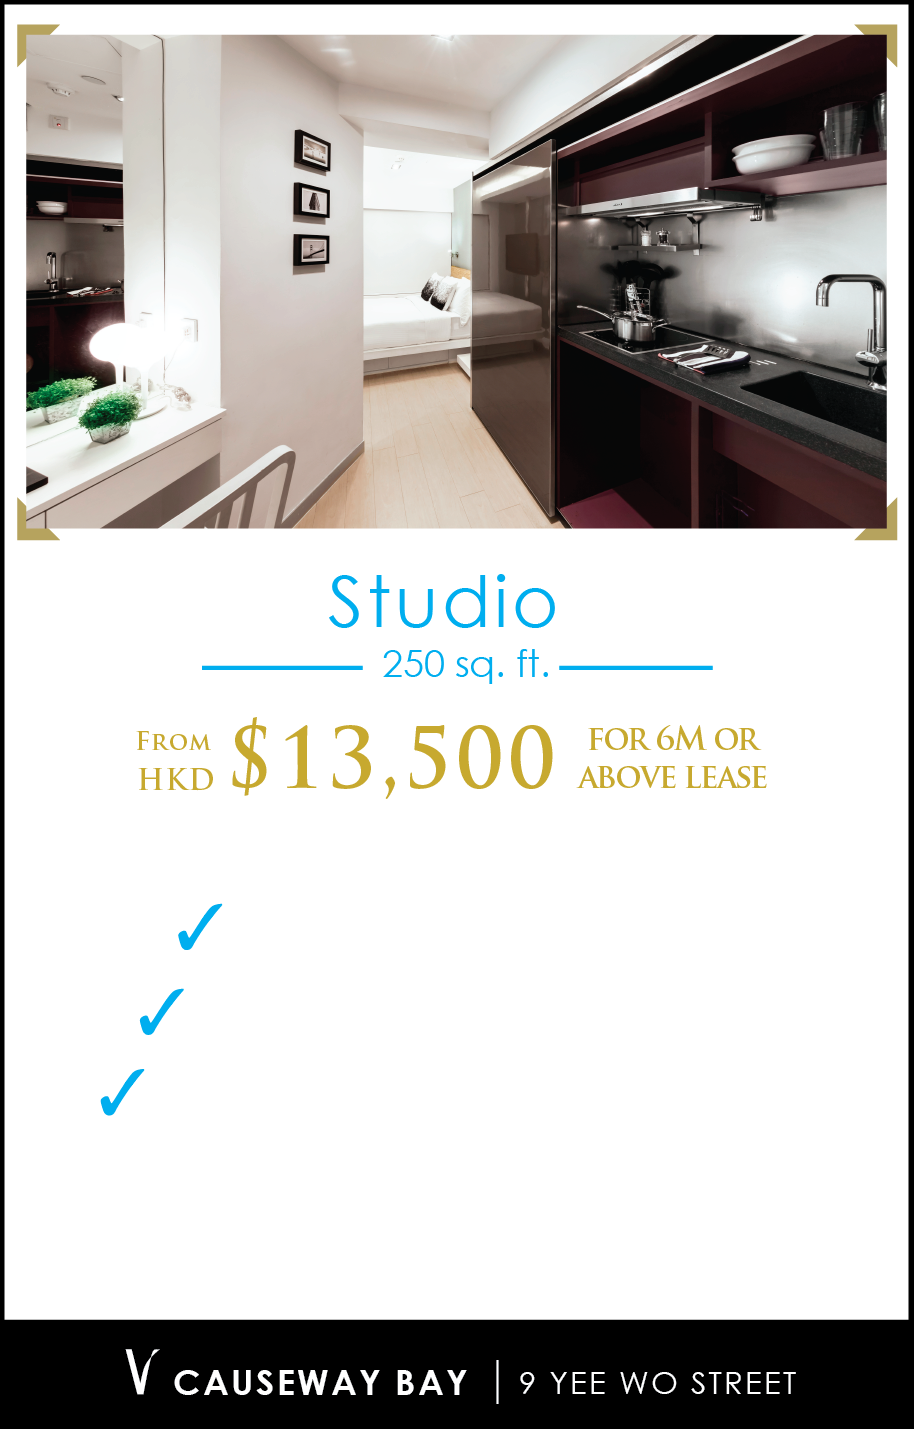 Spark Studio (230 – 430 sq. ft.) – Starting from $13,500